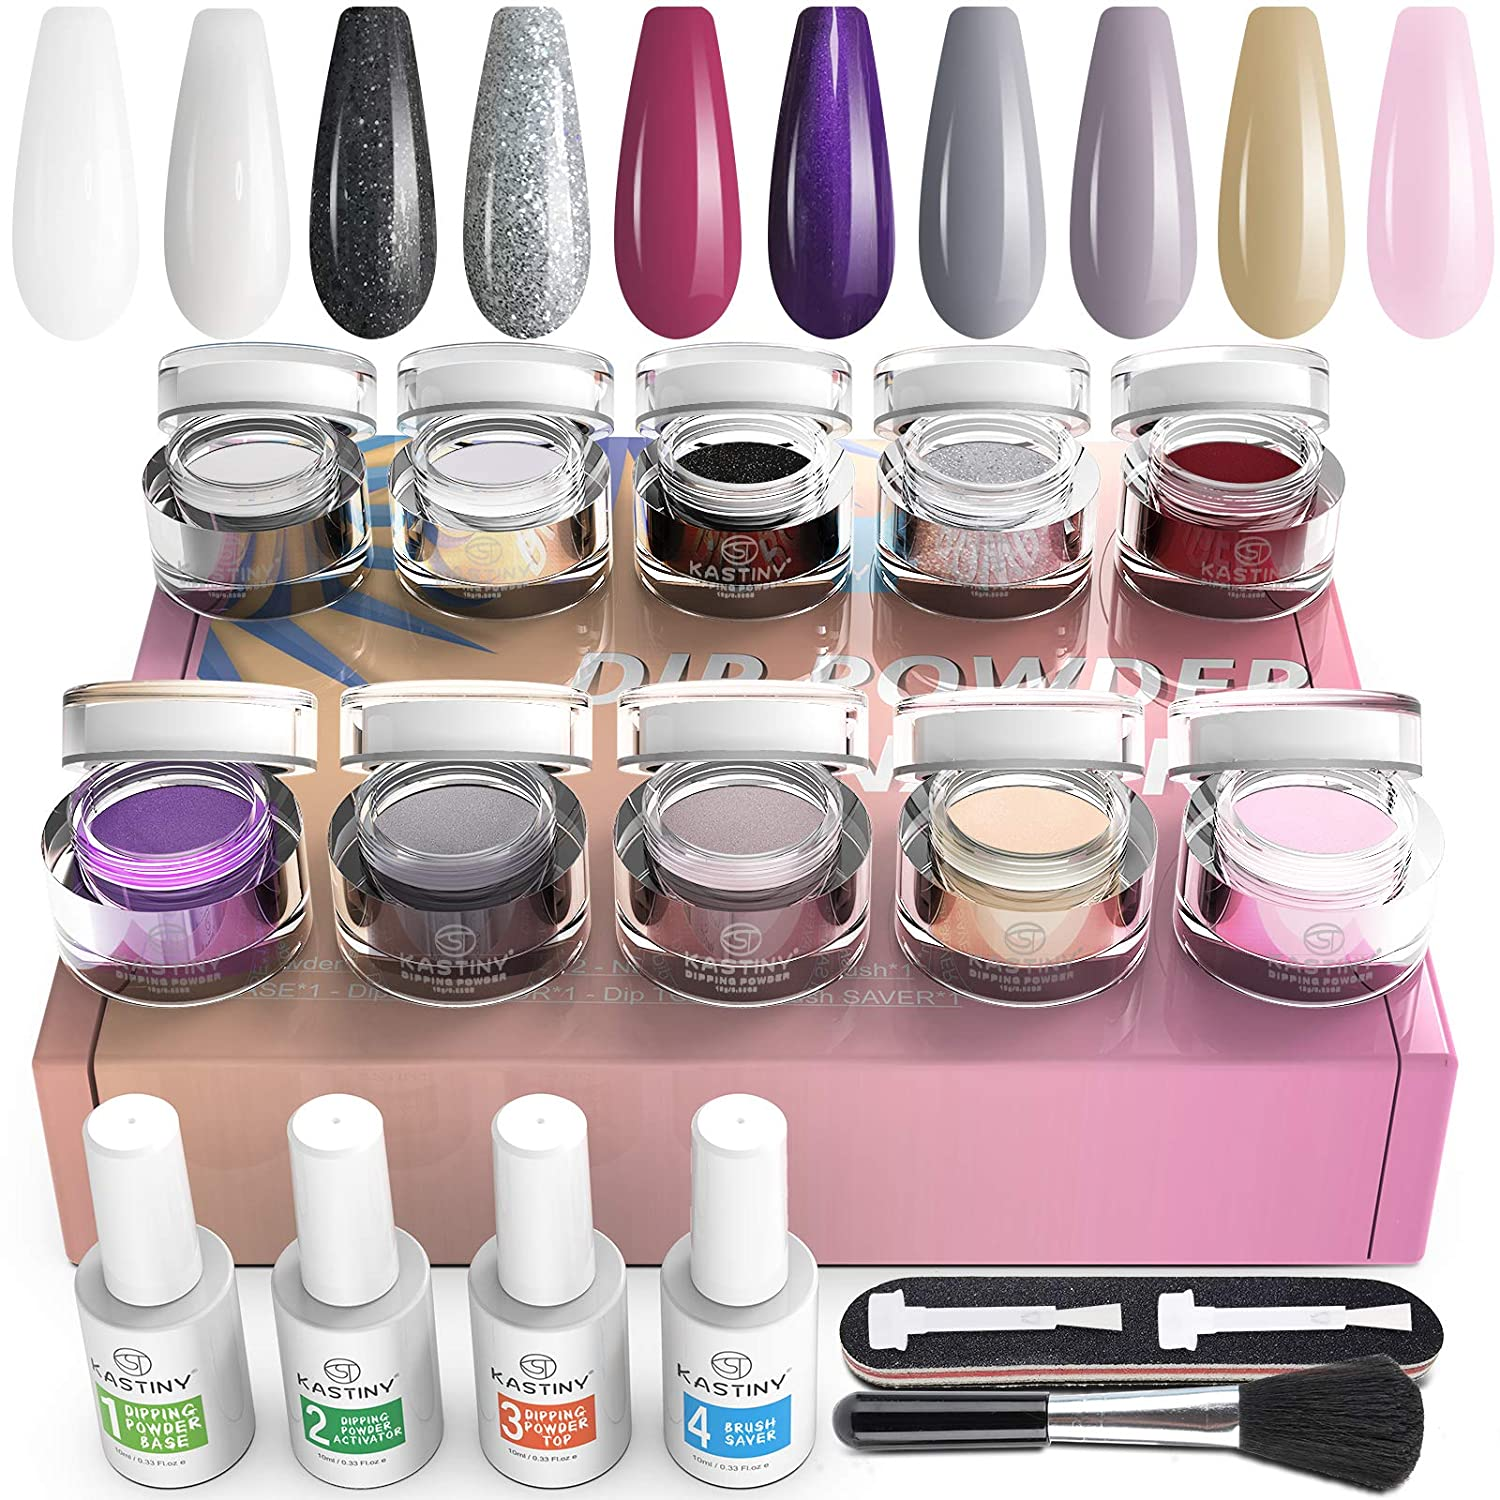 Dip Powder Nail Kit Starter, Kastiny 10 Colors Clear White Black Dipping Powder with Base Activator Top Coat and Brush Saver, Glitter Nail Art DIY Manicure Set at Home